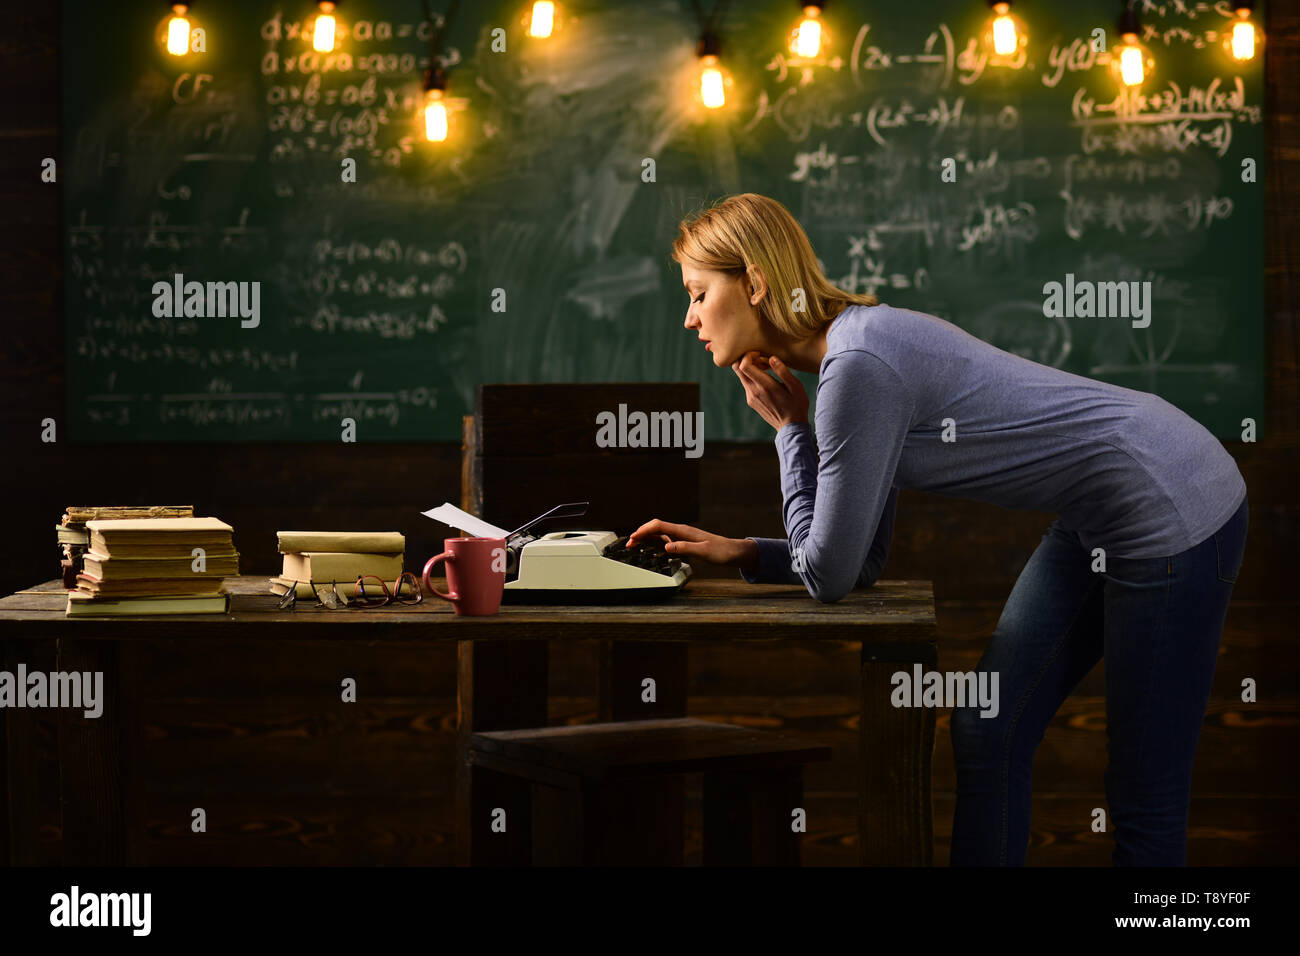 New technology in modern school. Private detective research. Information. Back to school. Thoughtful author. Woman write love story novel in redaction - Stock Image